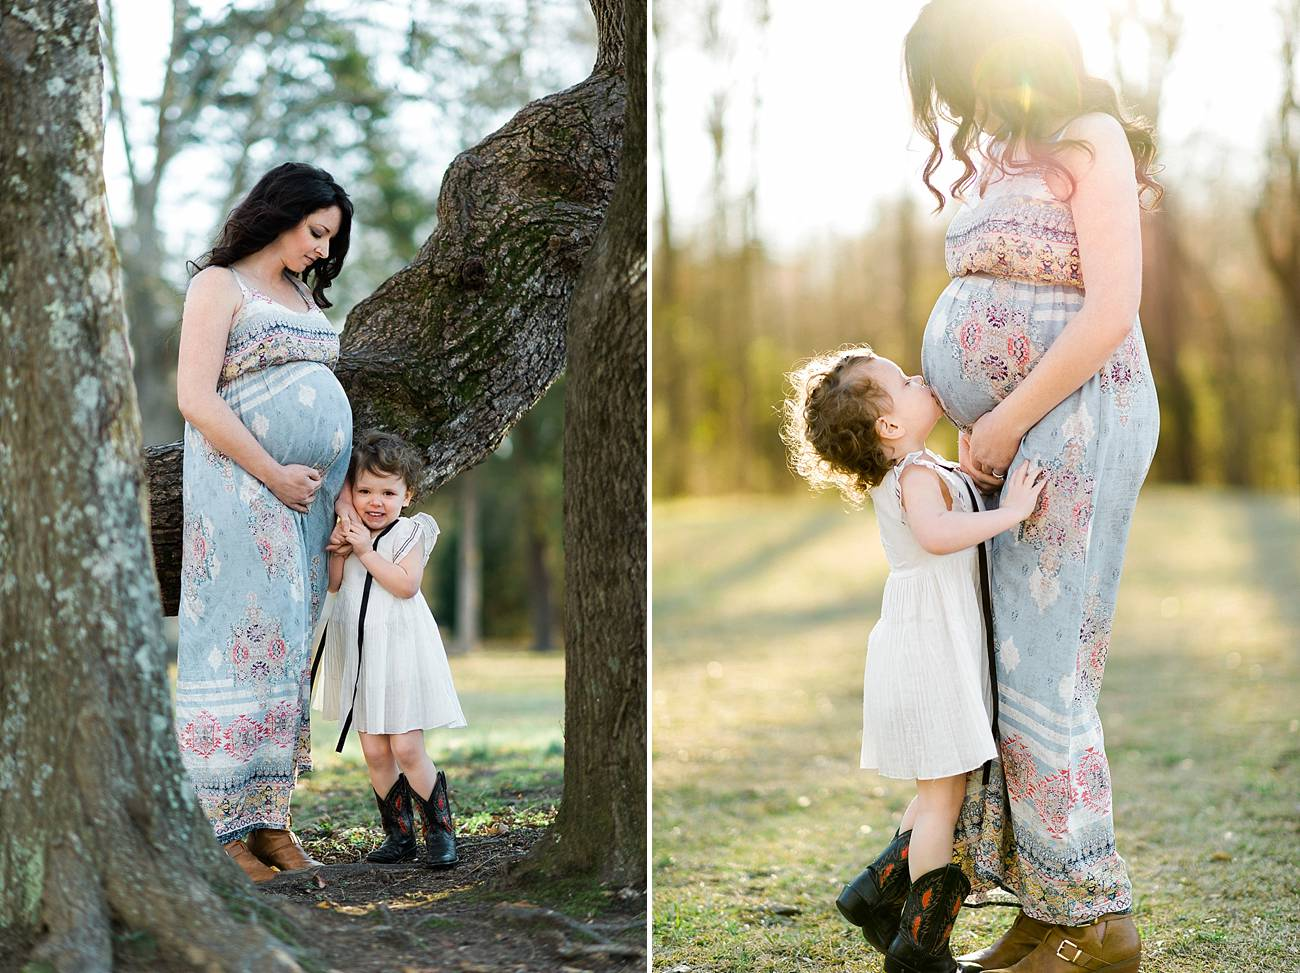 a little girl snuggles up to her mother and kisses her belly during her maternity shoot at Westminster Park, Rock Hill, SC